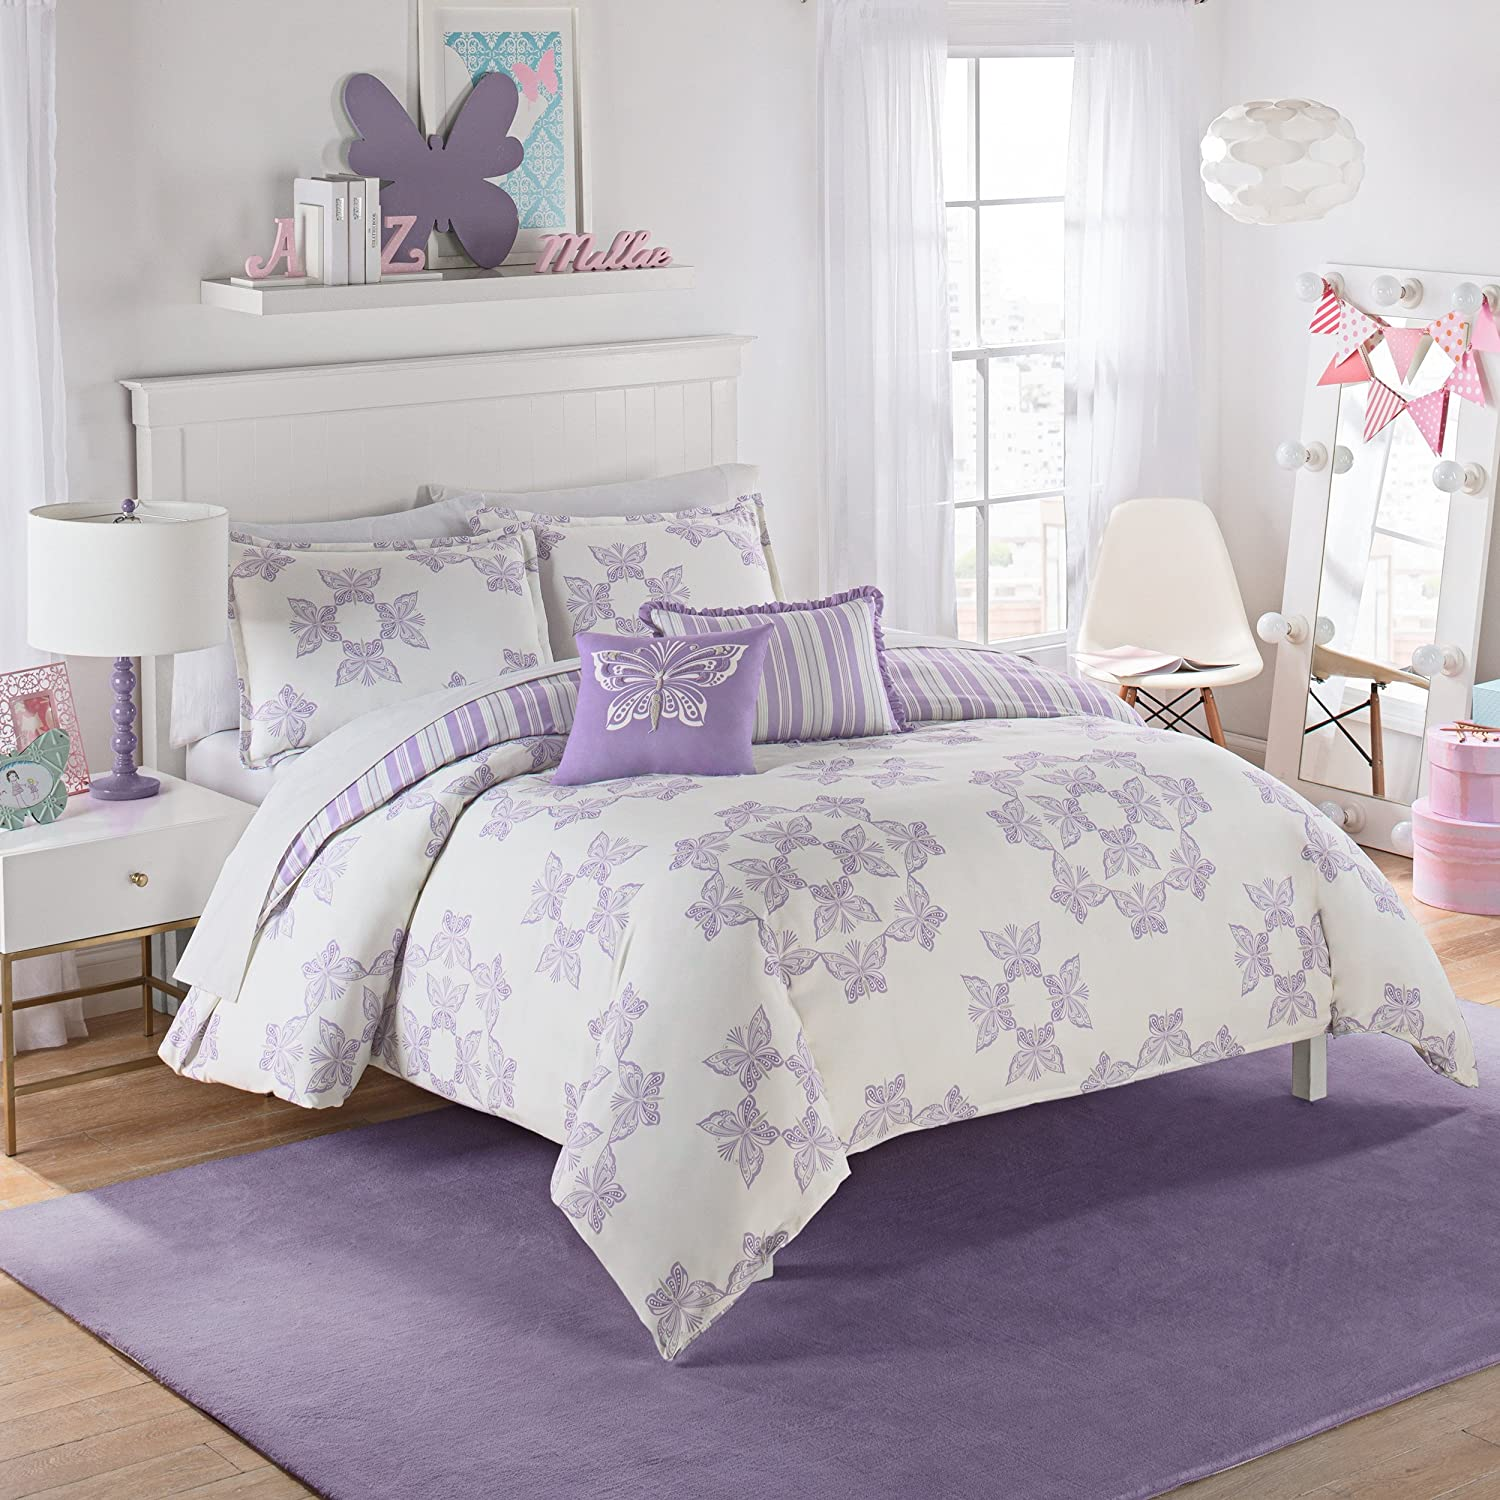 Waverly Kids 16434BEDDTWNPUR Ipanema 86-inch by 68-Inch Reversible Twin Bedding Collection, Purple